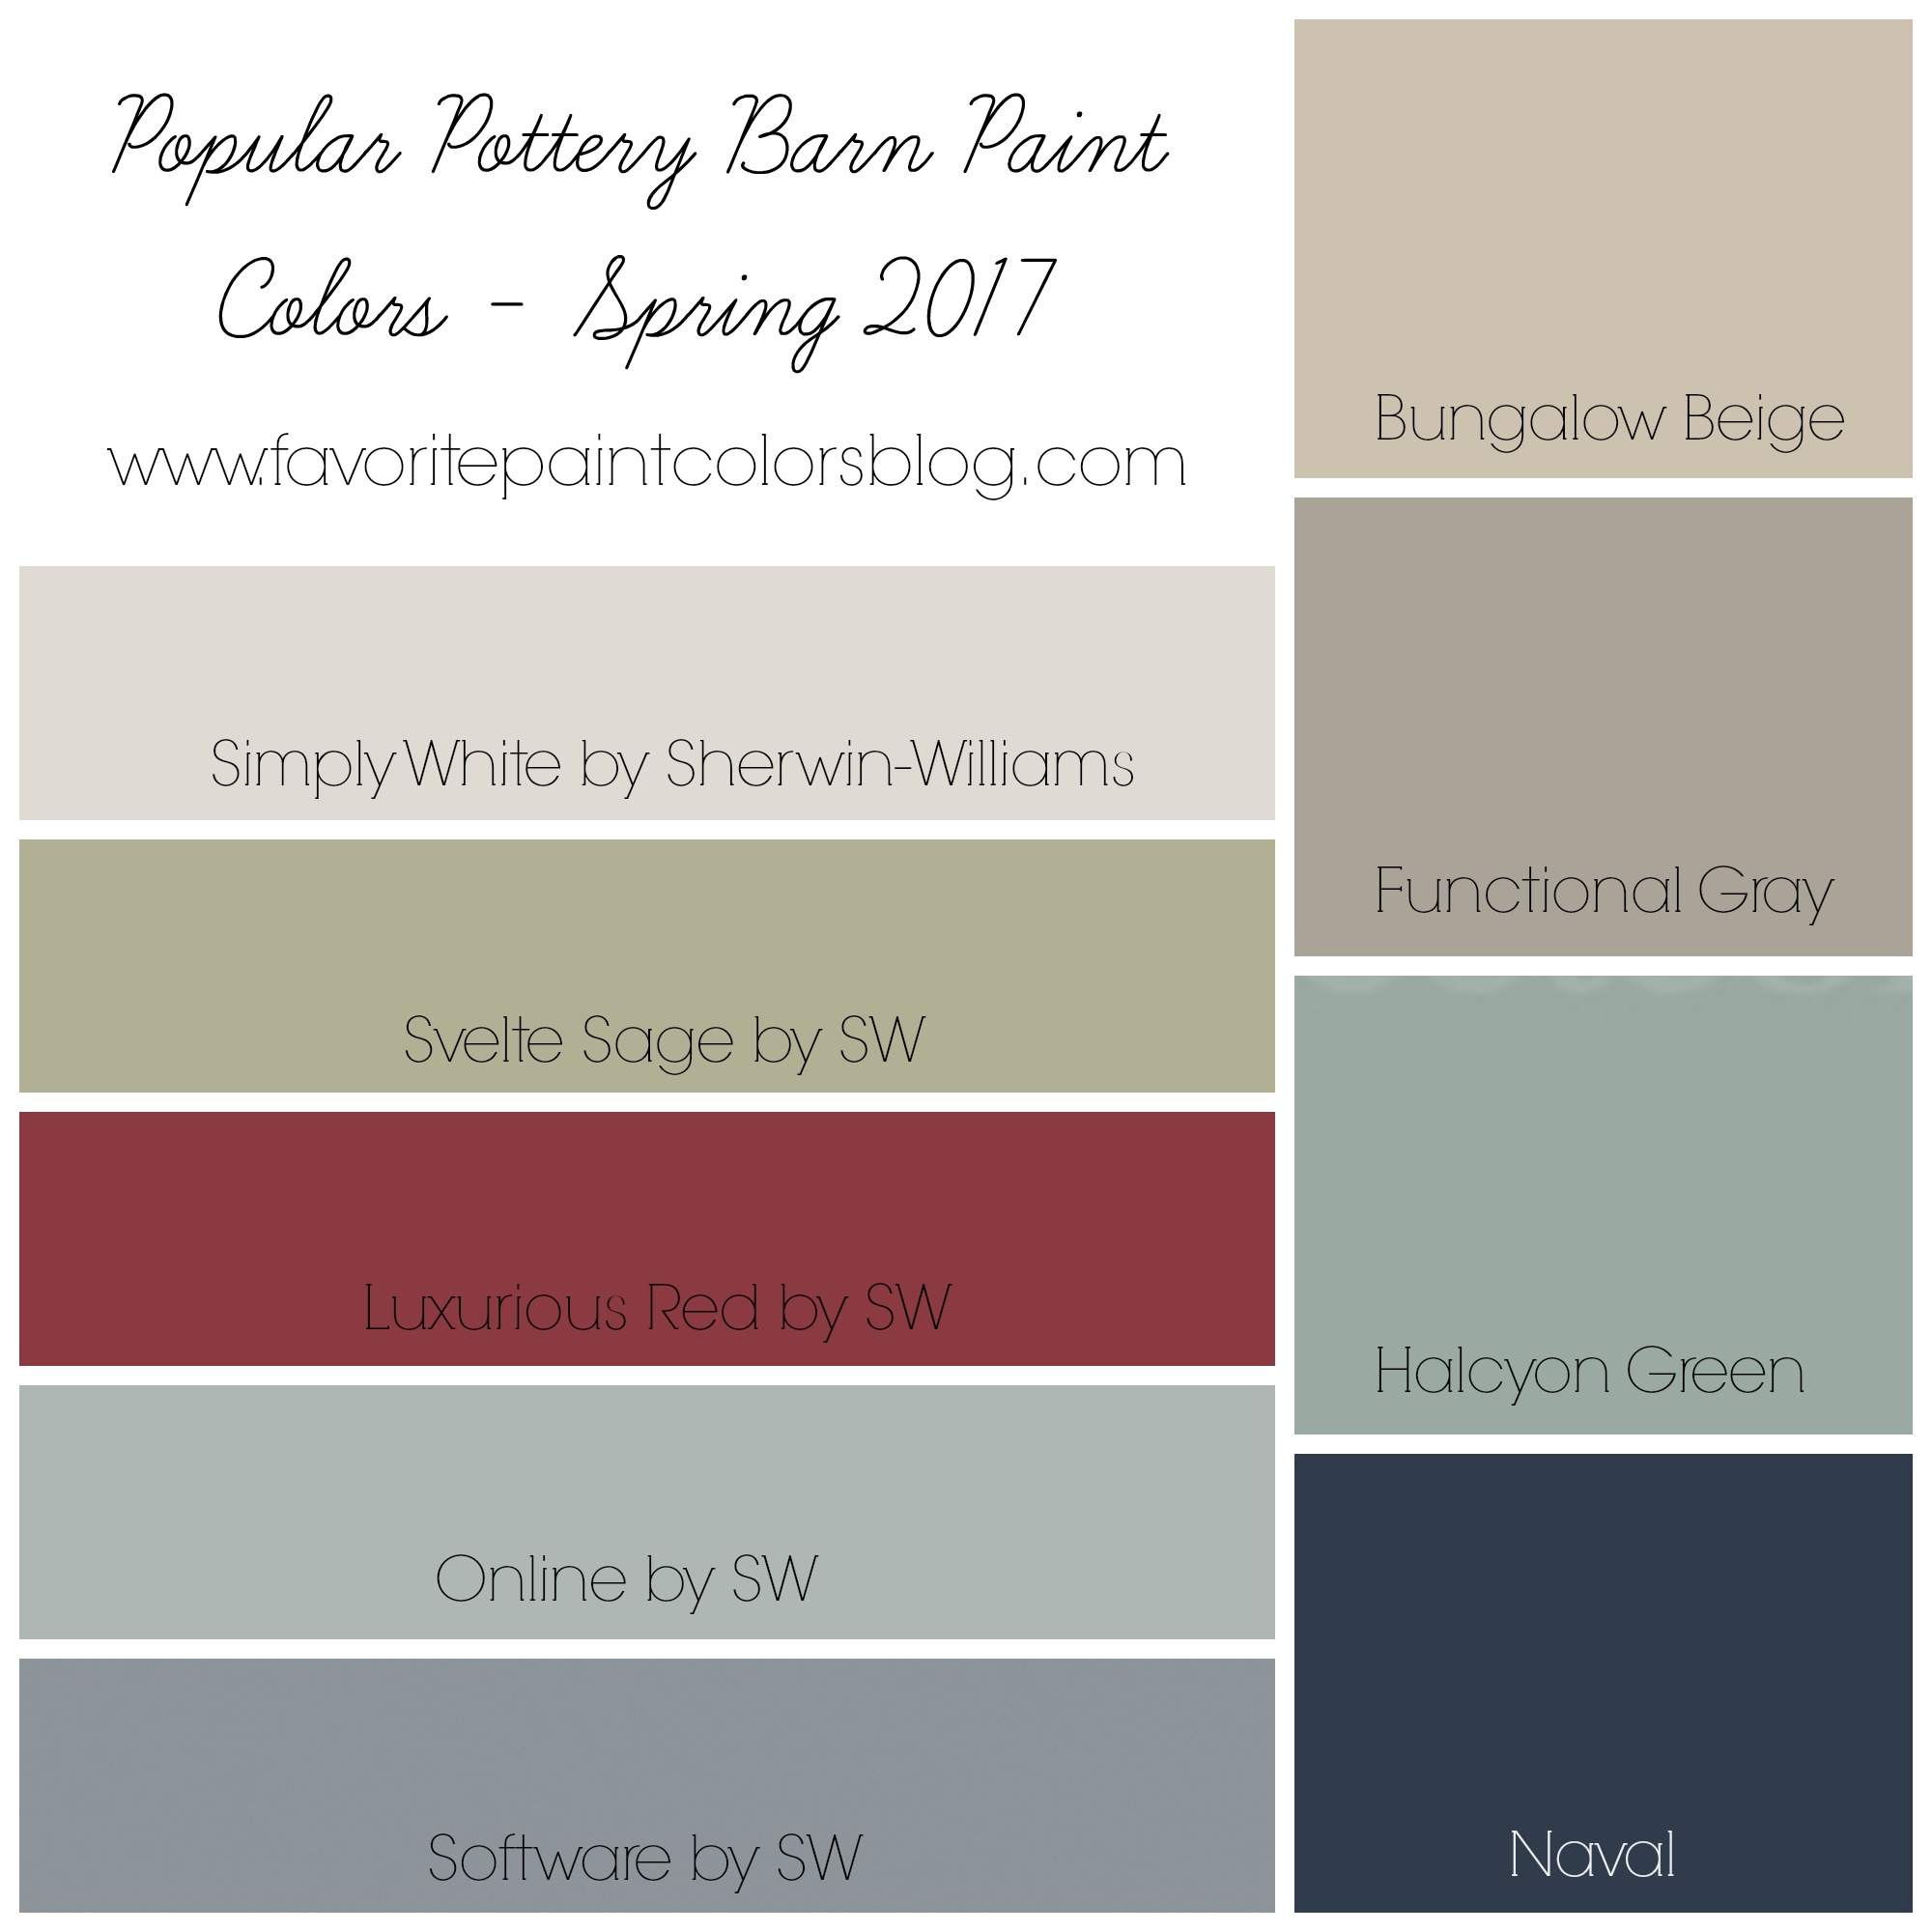 Most Popular Paint Colors Impressive Popular Pottery Barn Paint Colors  Favorite Paint Colors Blog Design Decoration